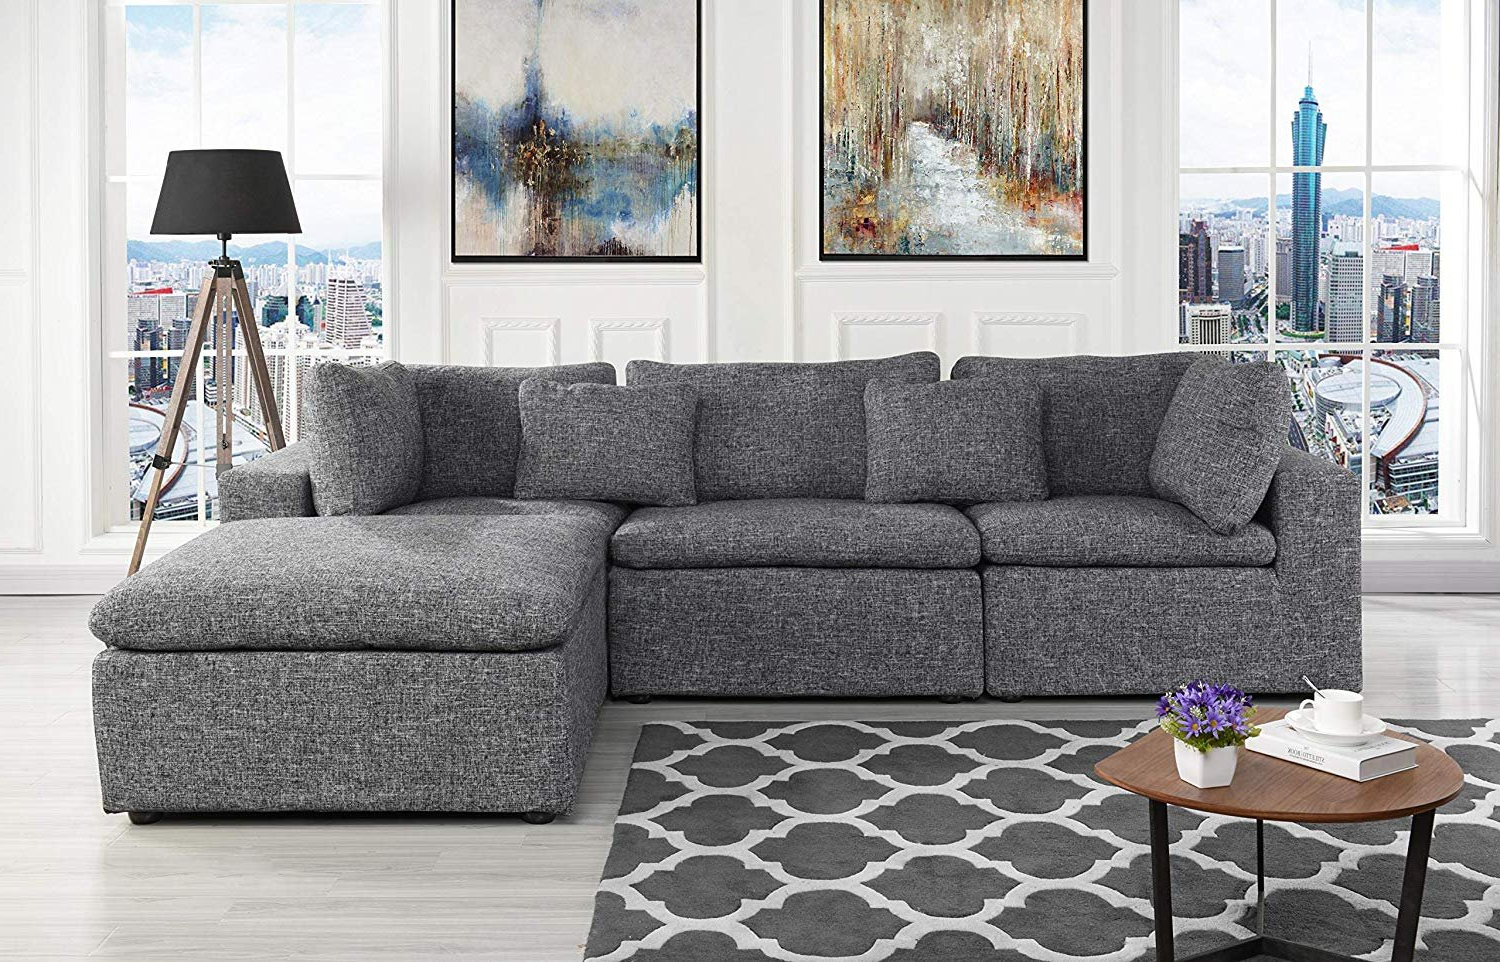 Large Linen Fabric Sectional Sofa, L Shape Couch With Wide Within Preferred 2pc Crowningshield Contemporary Chaise Sofas Light Gray (View 1 of 20)